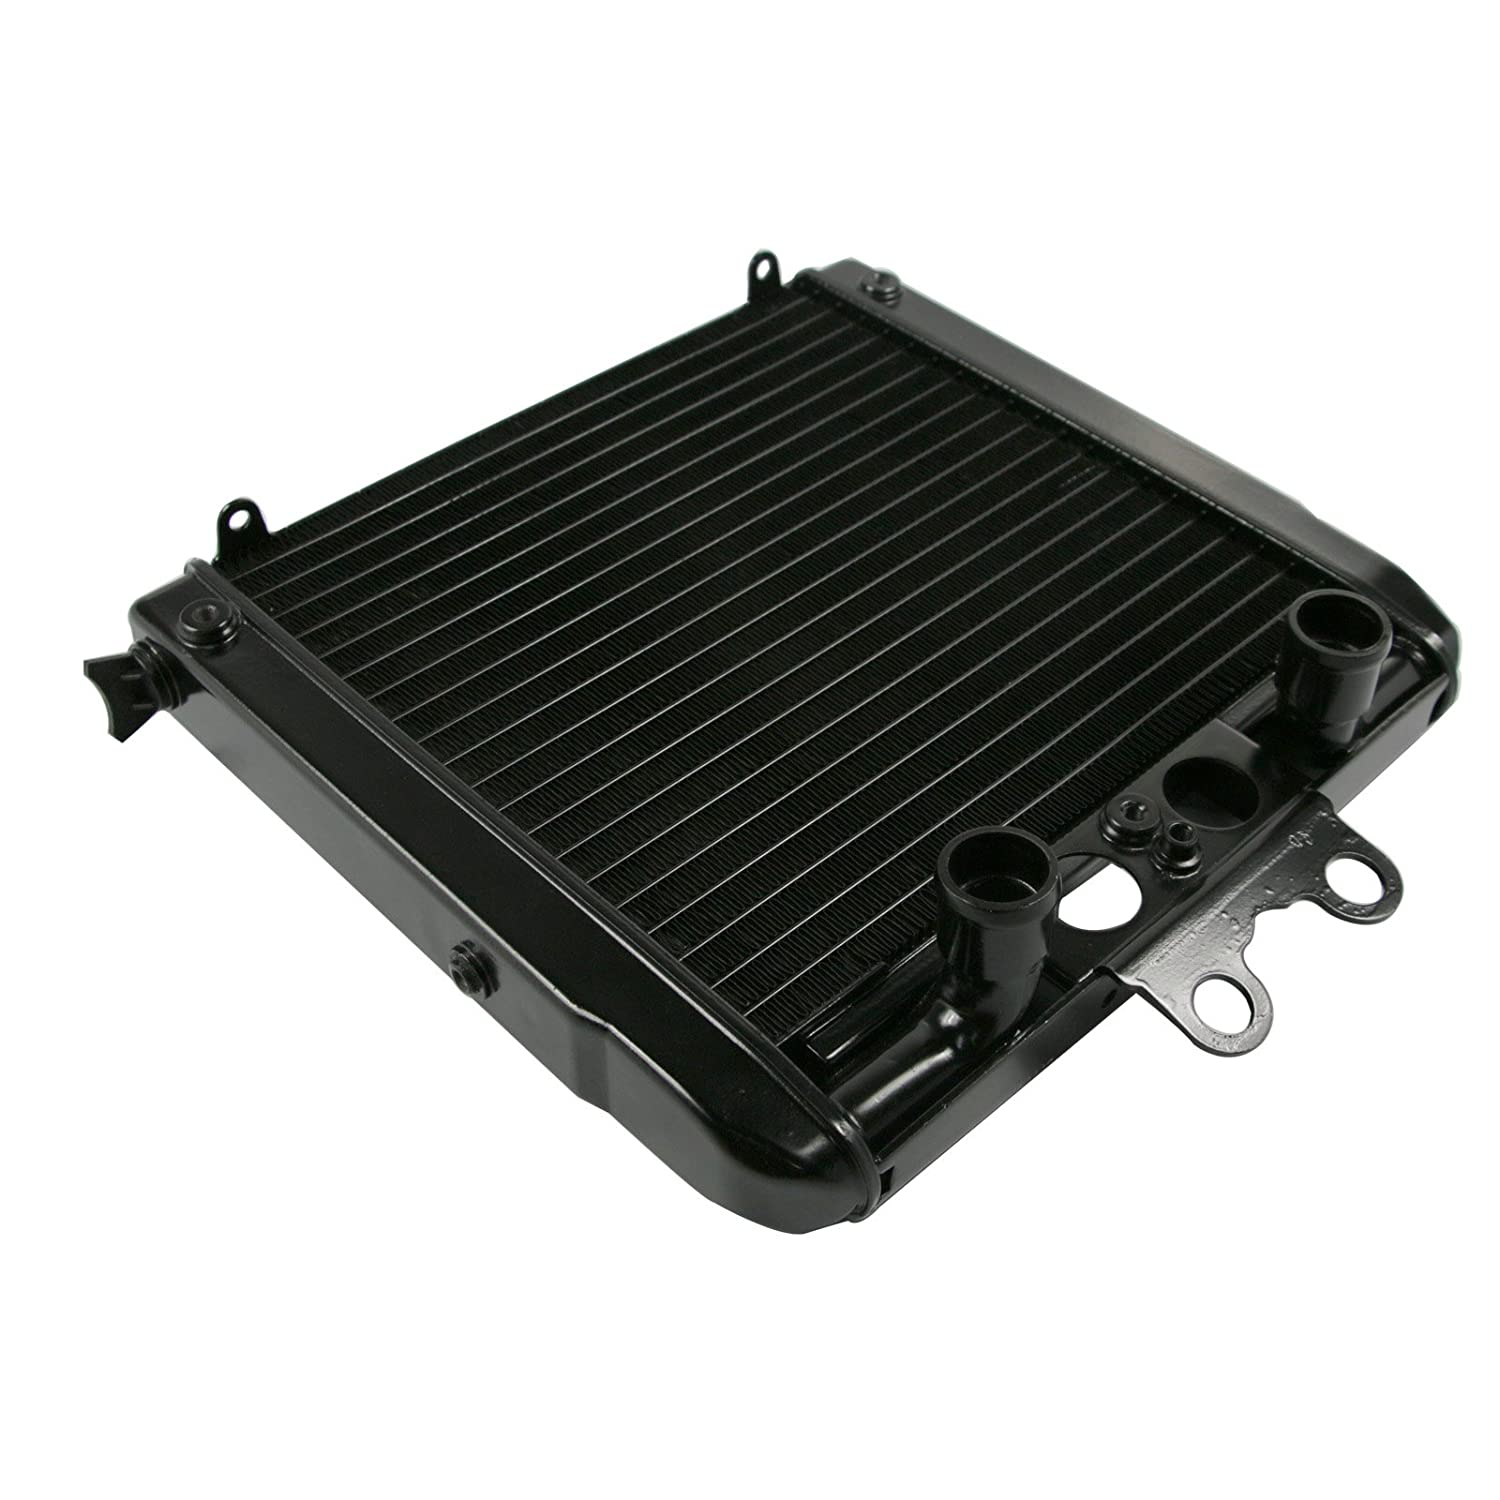 Aluminum Radiator Engine Cooling Cooler for Harley Davidson V-Rod VRSC 2004-2013